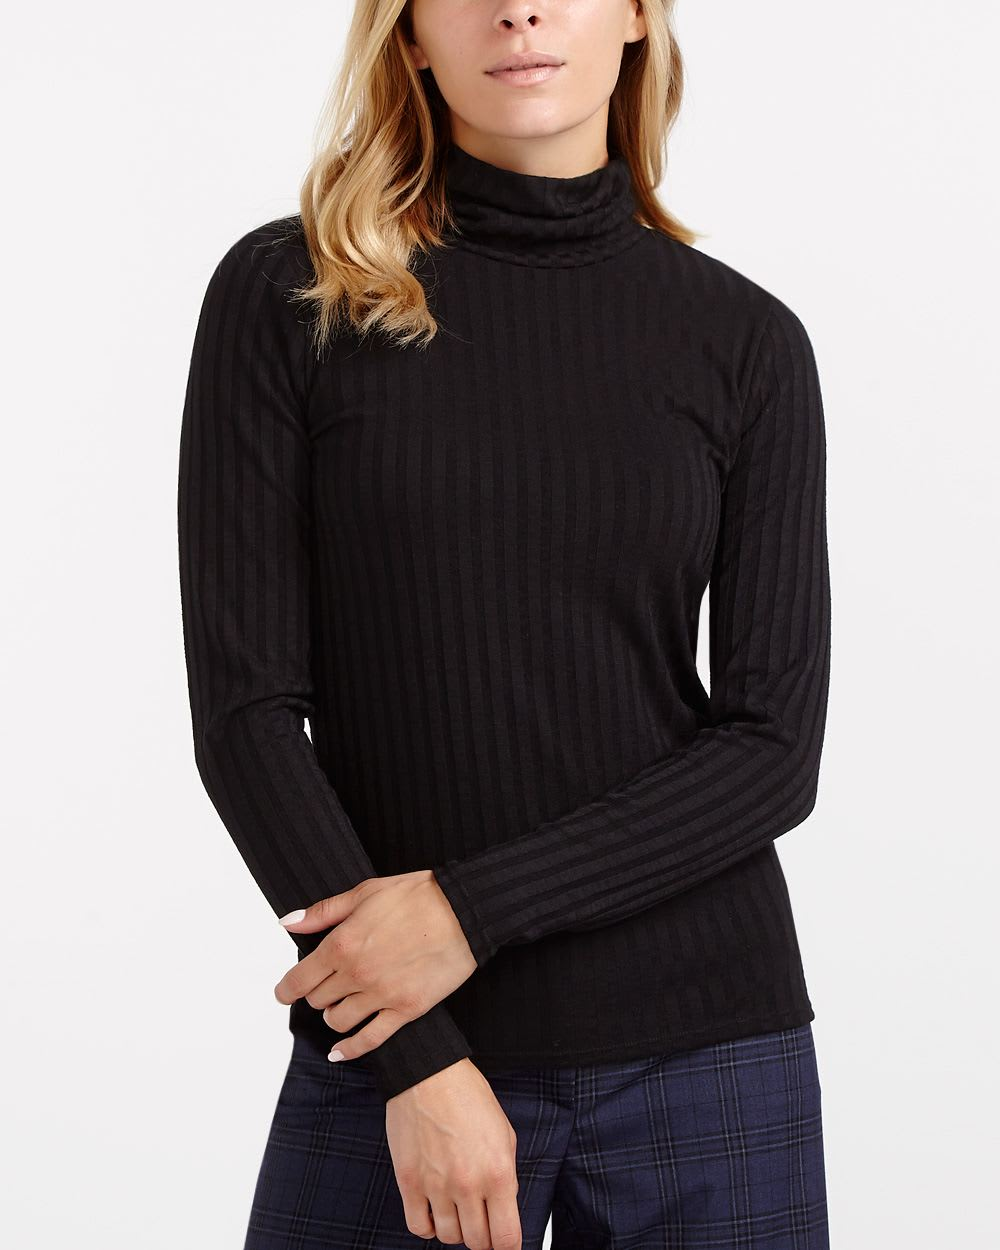 Long sleeve turtleneck t shirt women reitmans for Turtleneck under t shirt